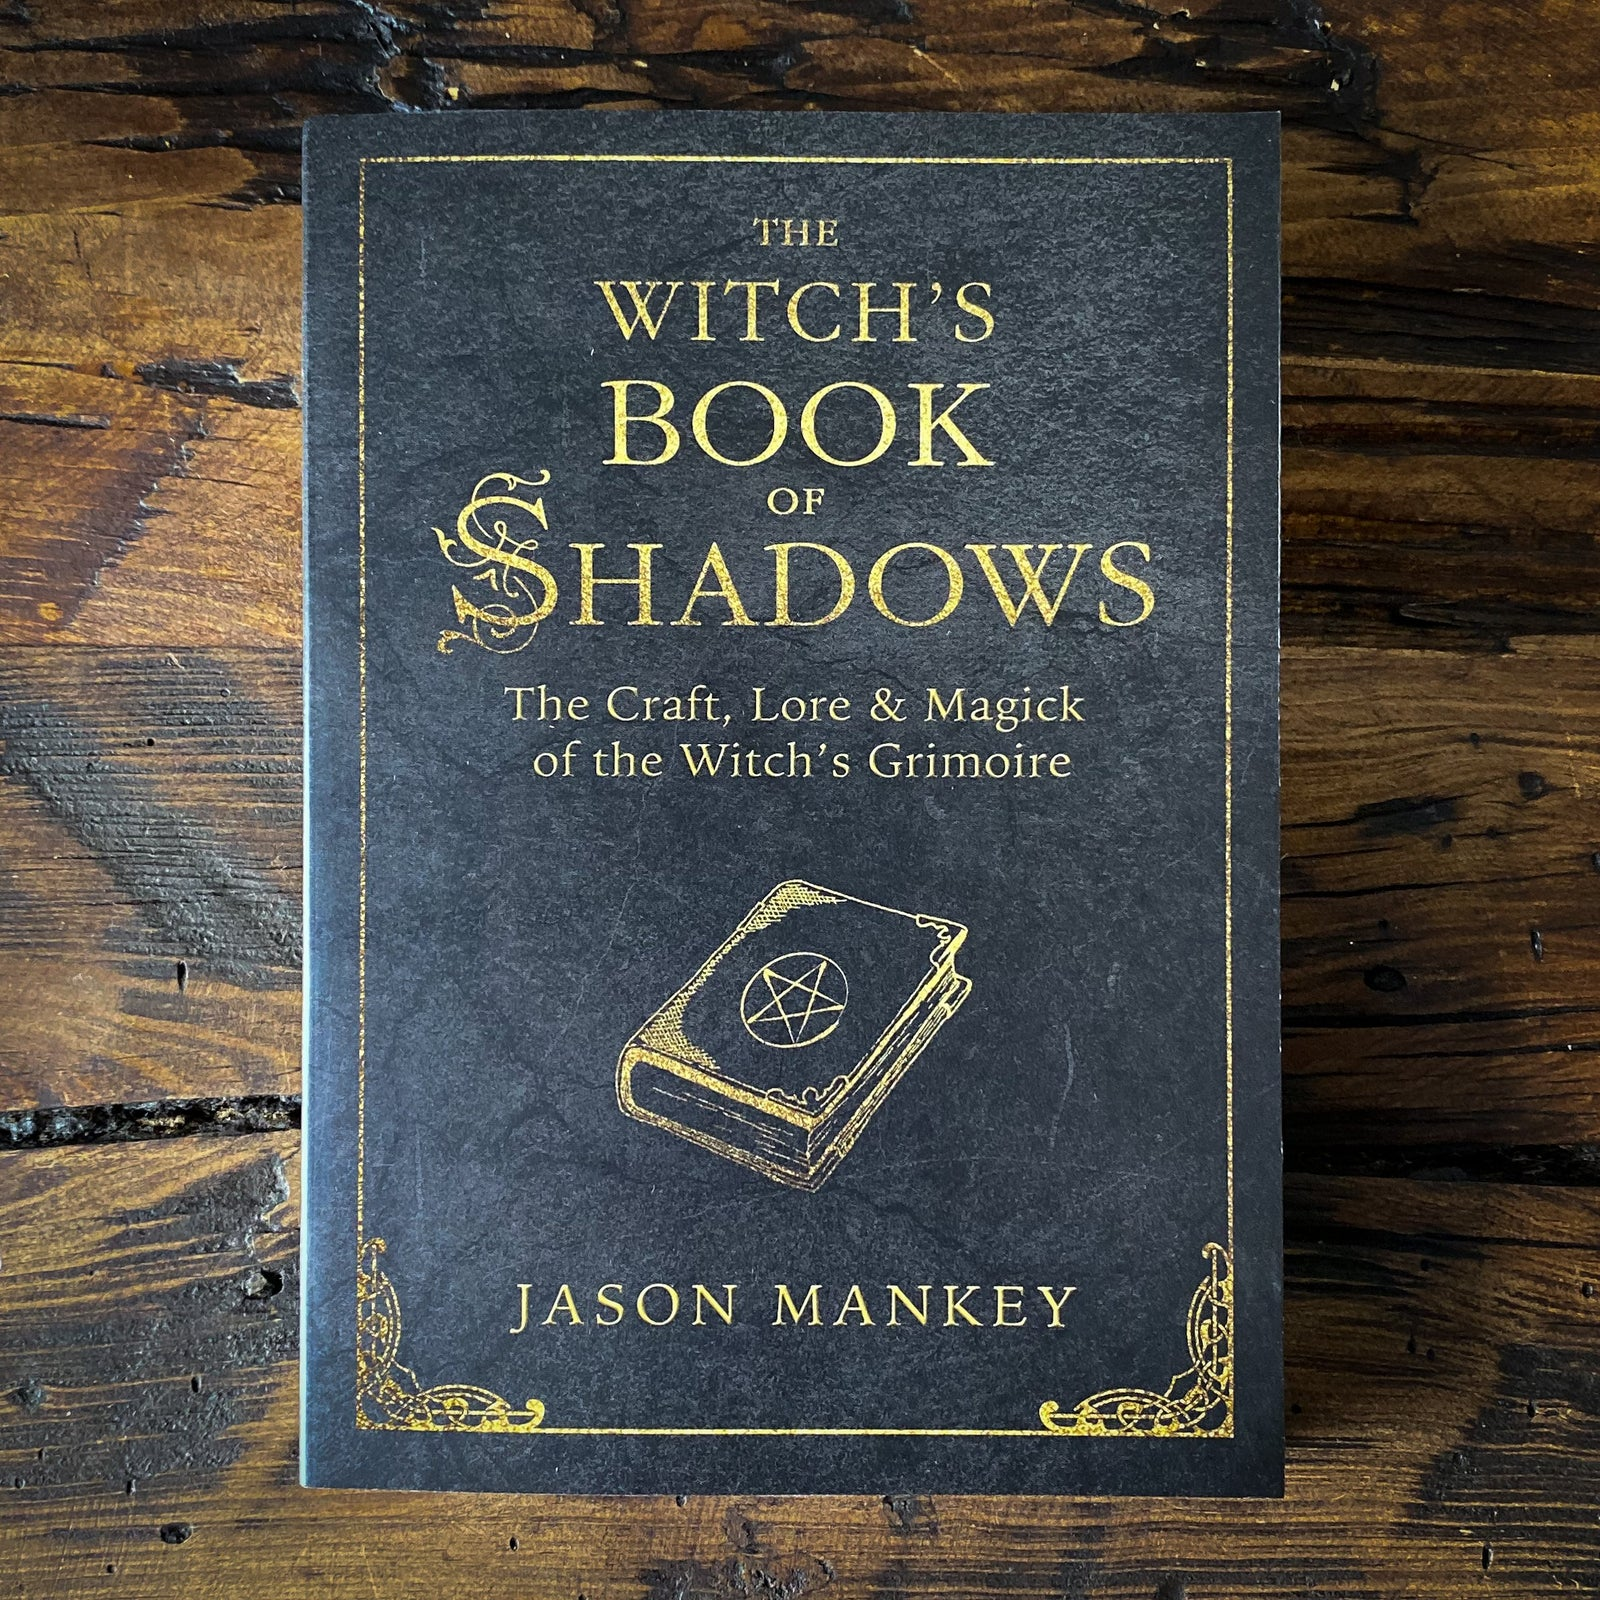 The Witch's Book of Shadows - The Craft, Lore & Magick of the Witch's Grimoire